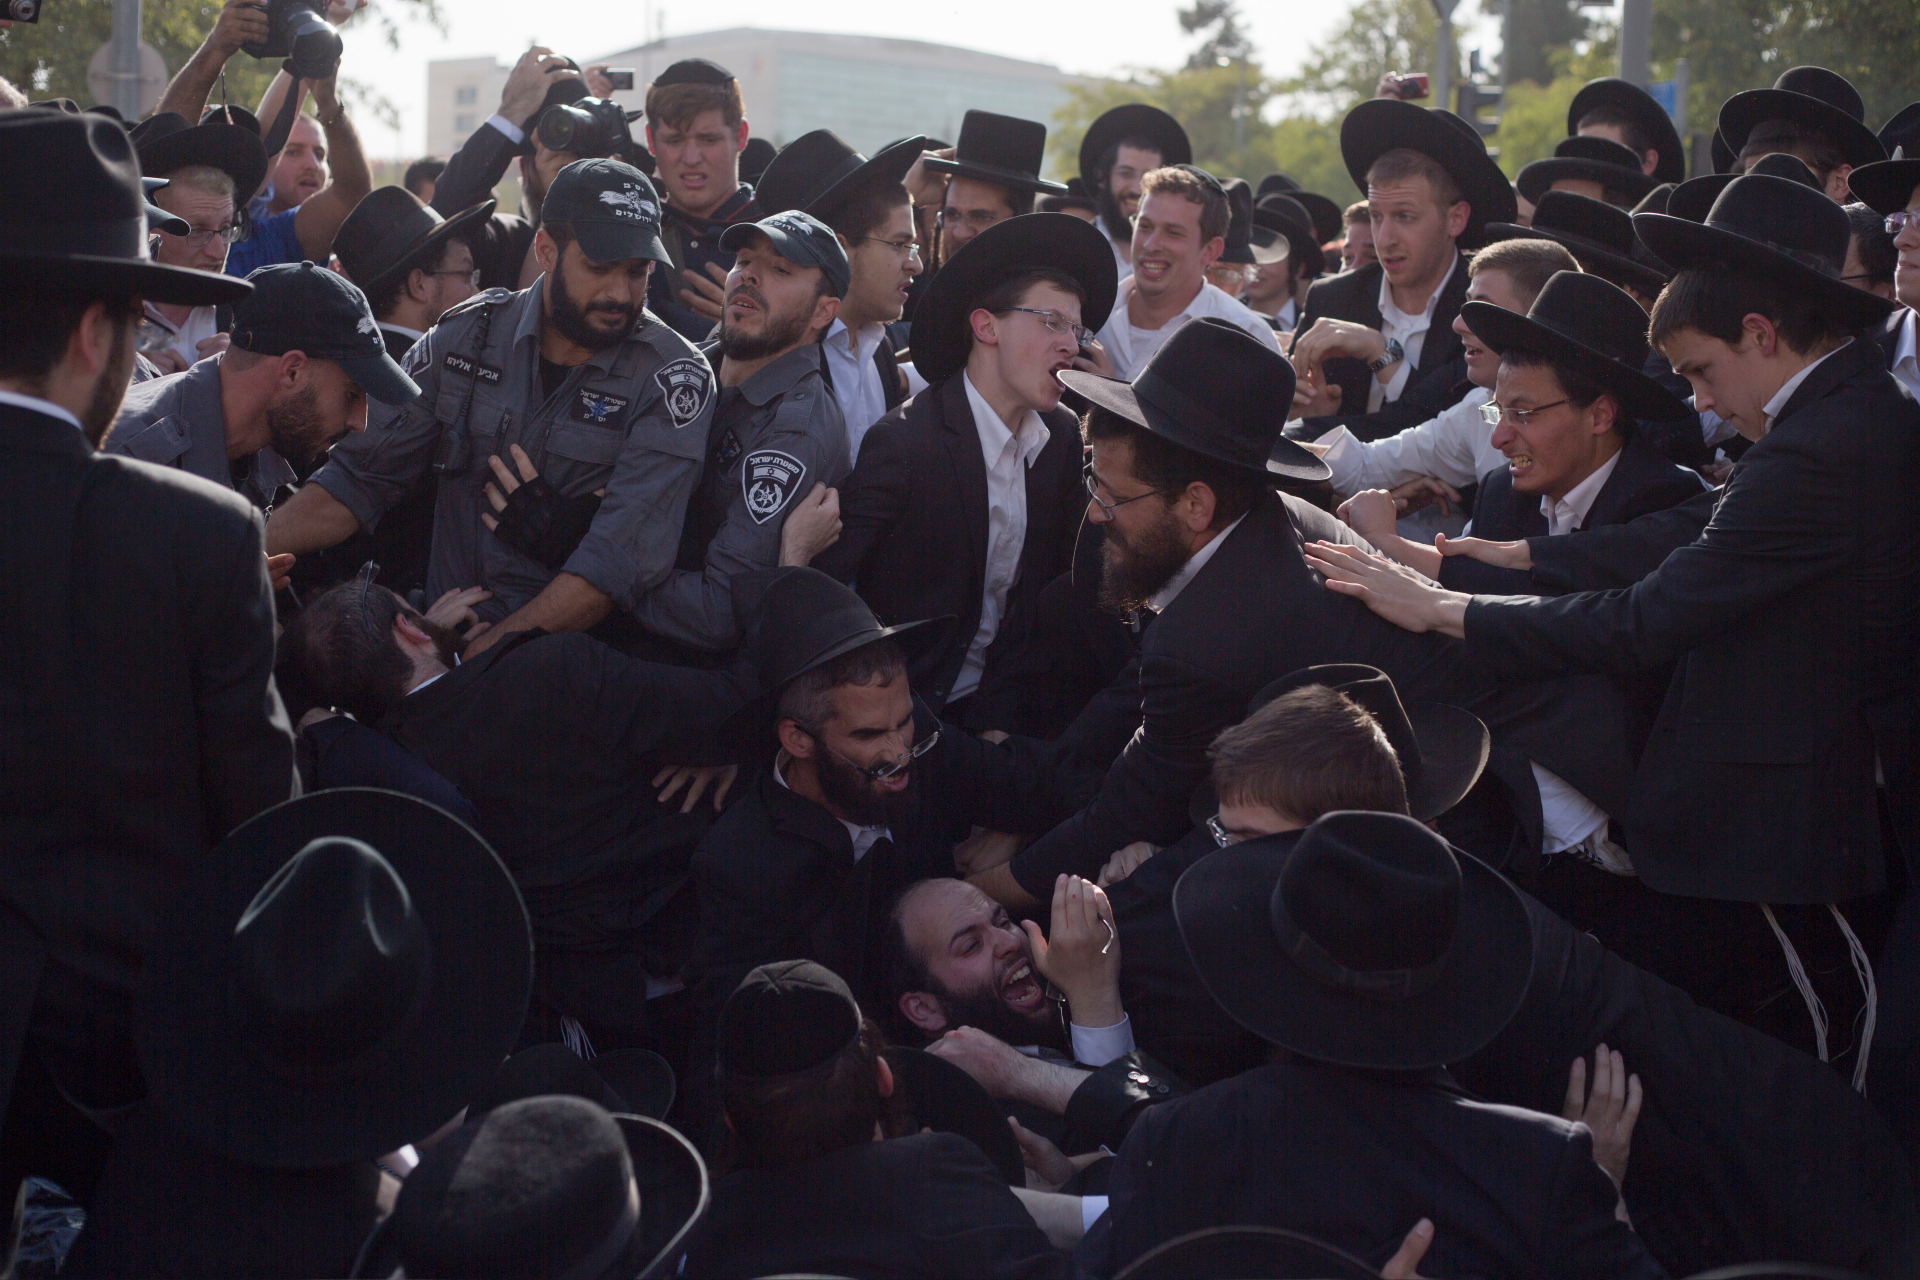 Westlake Legal Group ContentBroker_contentid-08d72d847e80459f95bfabe6c65b5605-1 New Israeli election highlights tense ties to ultra-Orthodox fox-news/world/world-regions/middle-east fox-news/world/religion fox-news/world fnc/world fnc b5f723a7-2409-5dd8-857d-af103528b195 Associated Press article ARON HELLER